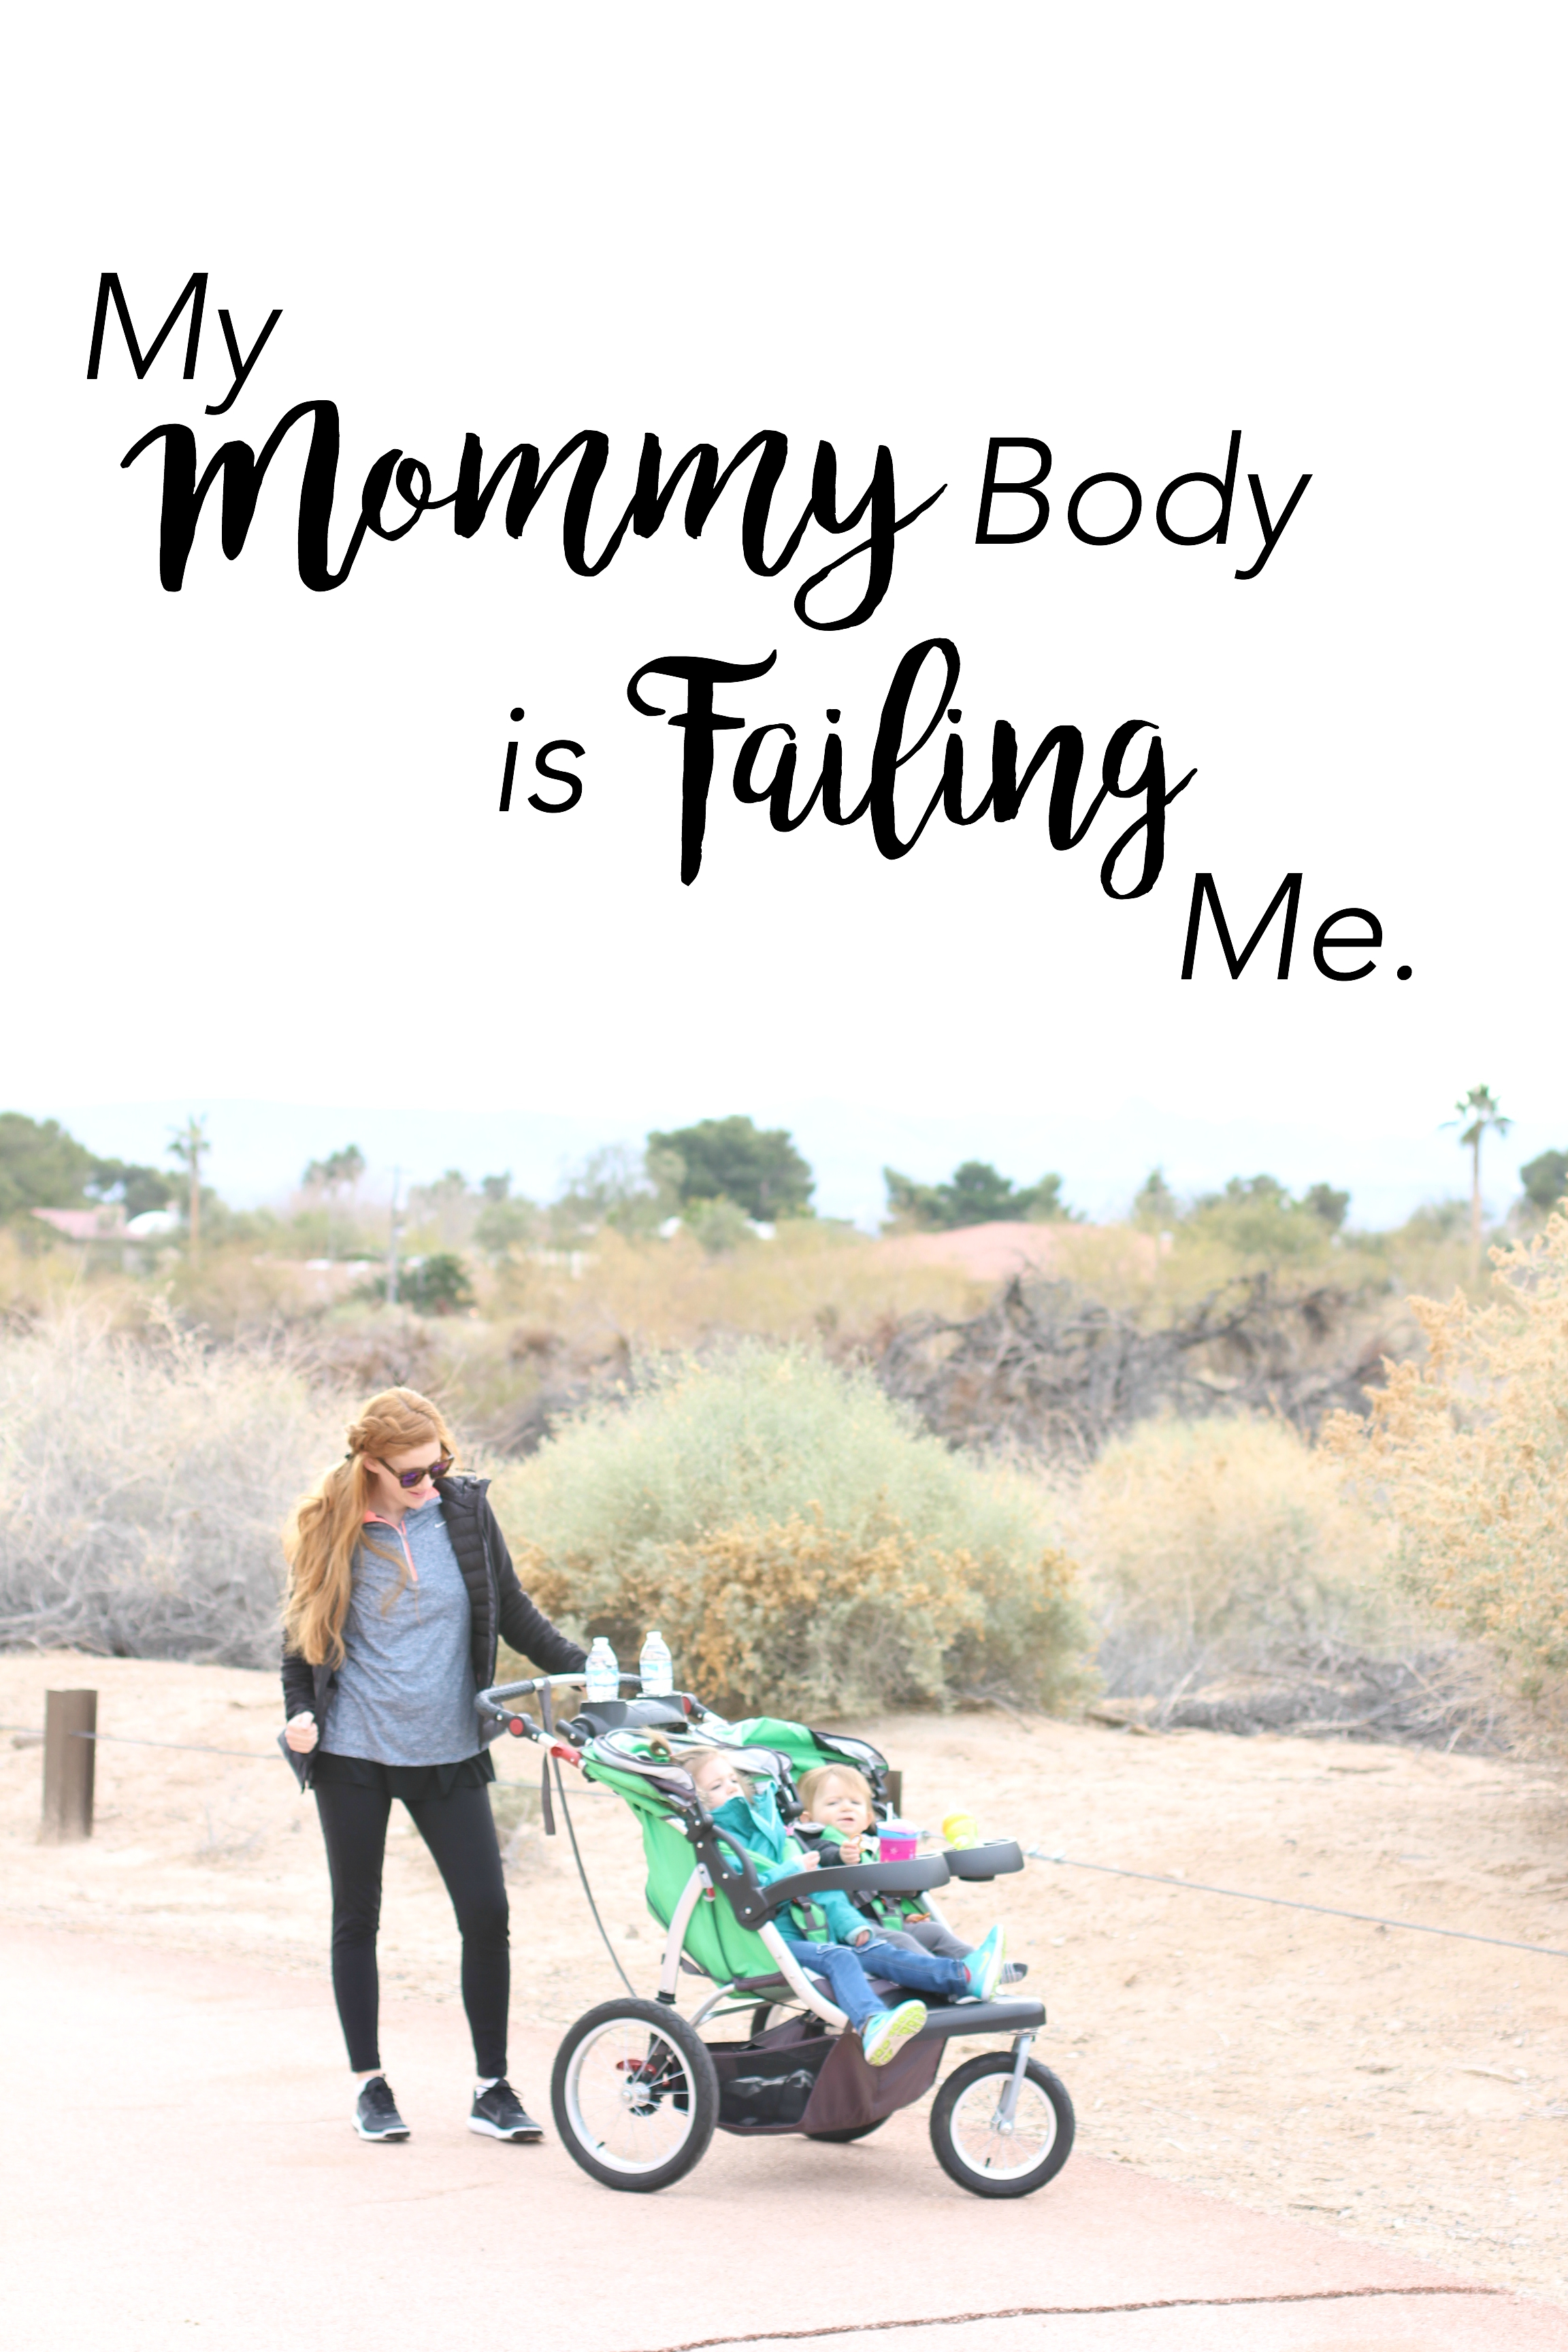 My Mommy Body is Failing Me.